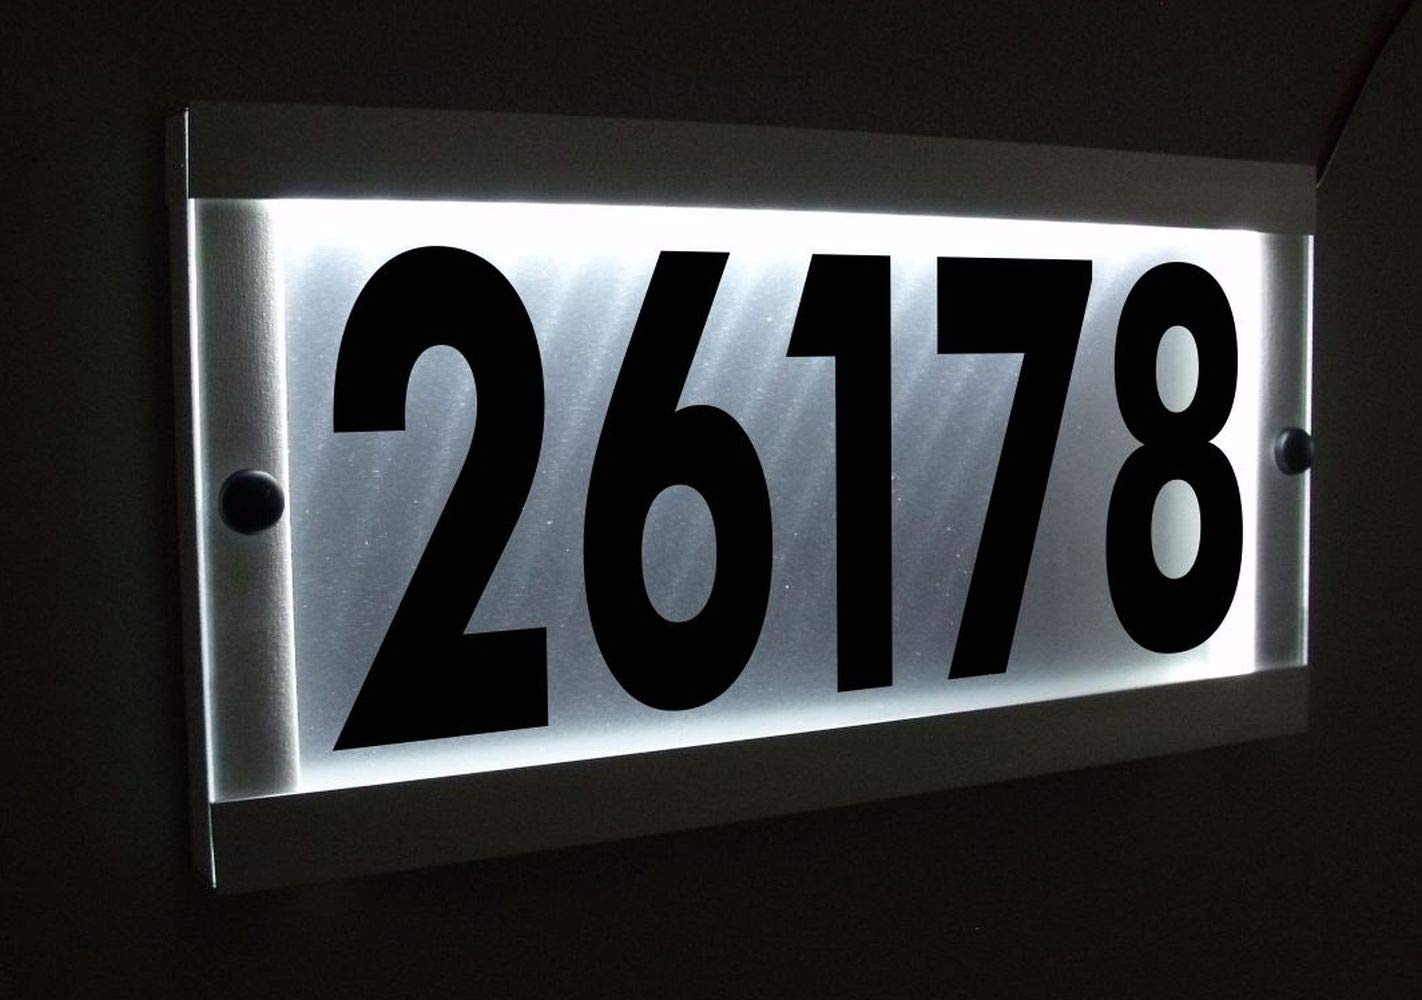 Custom led lighted address sign illuminated house number address plaque aluminum waterproof design amazon com